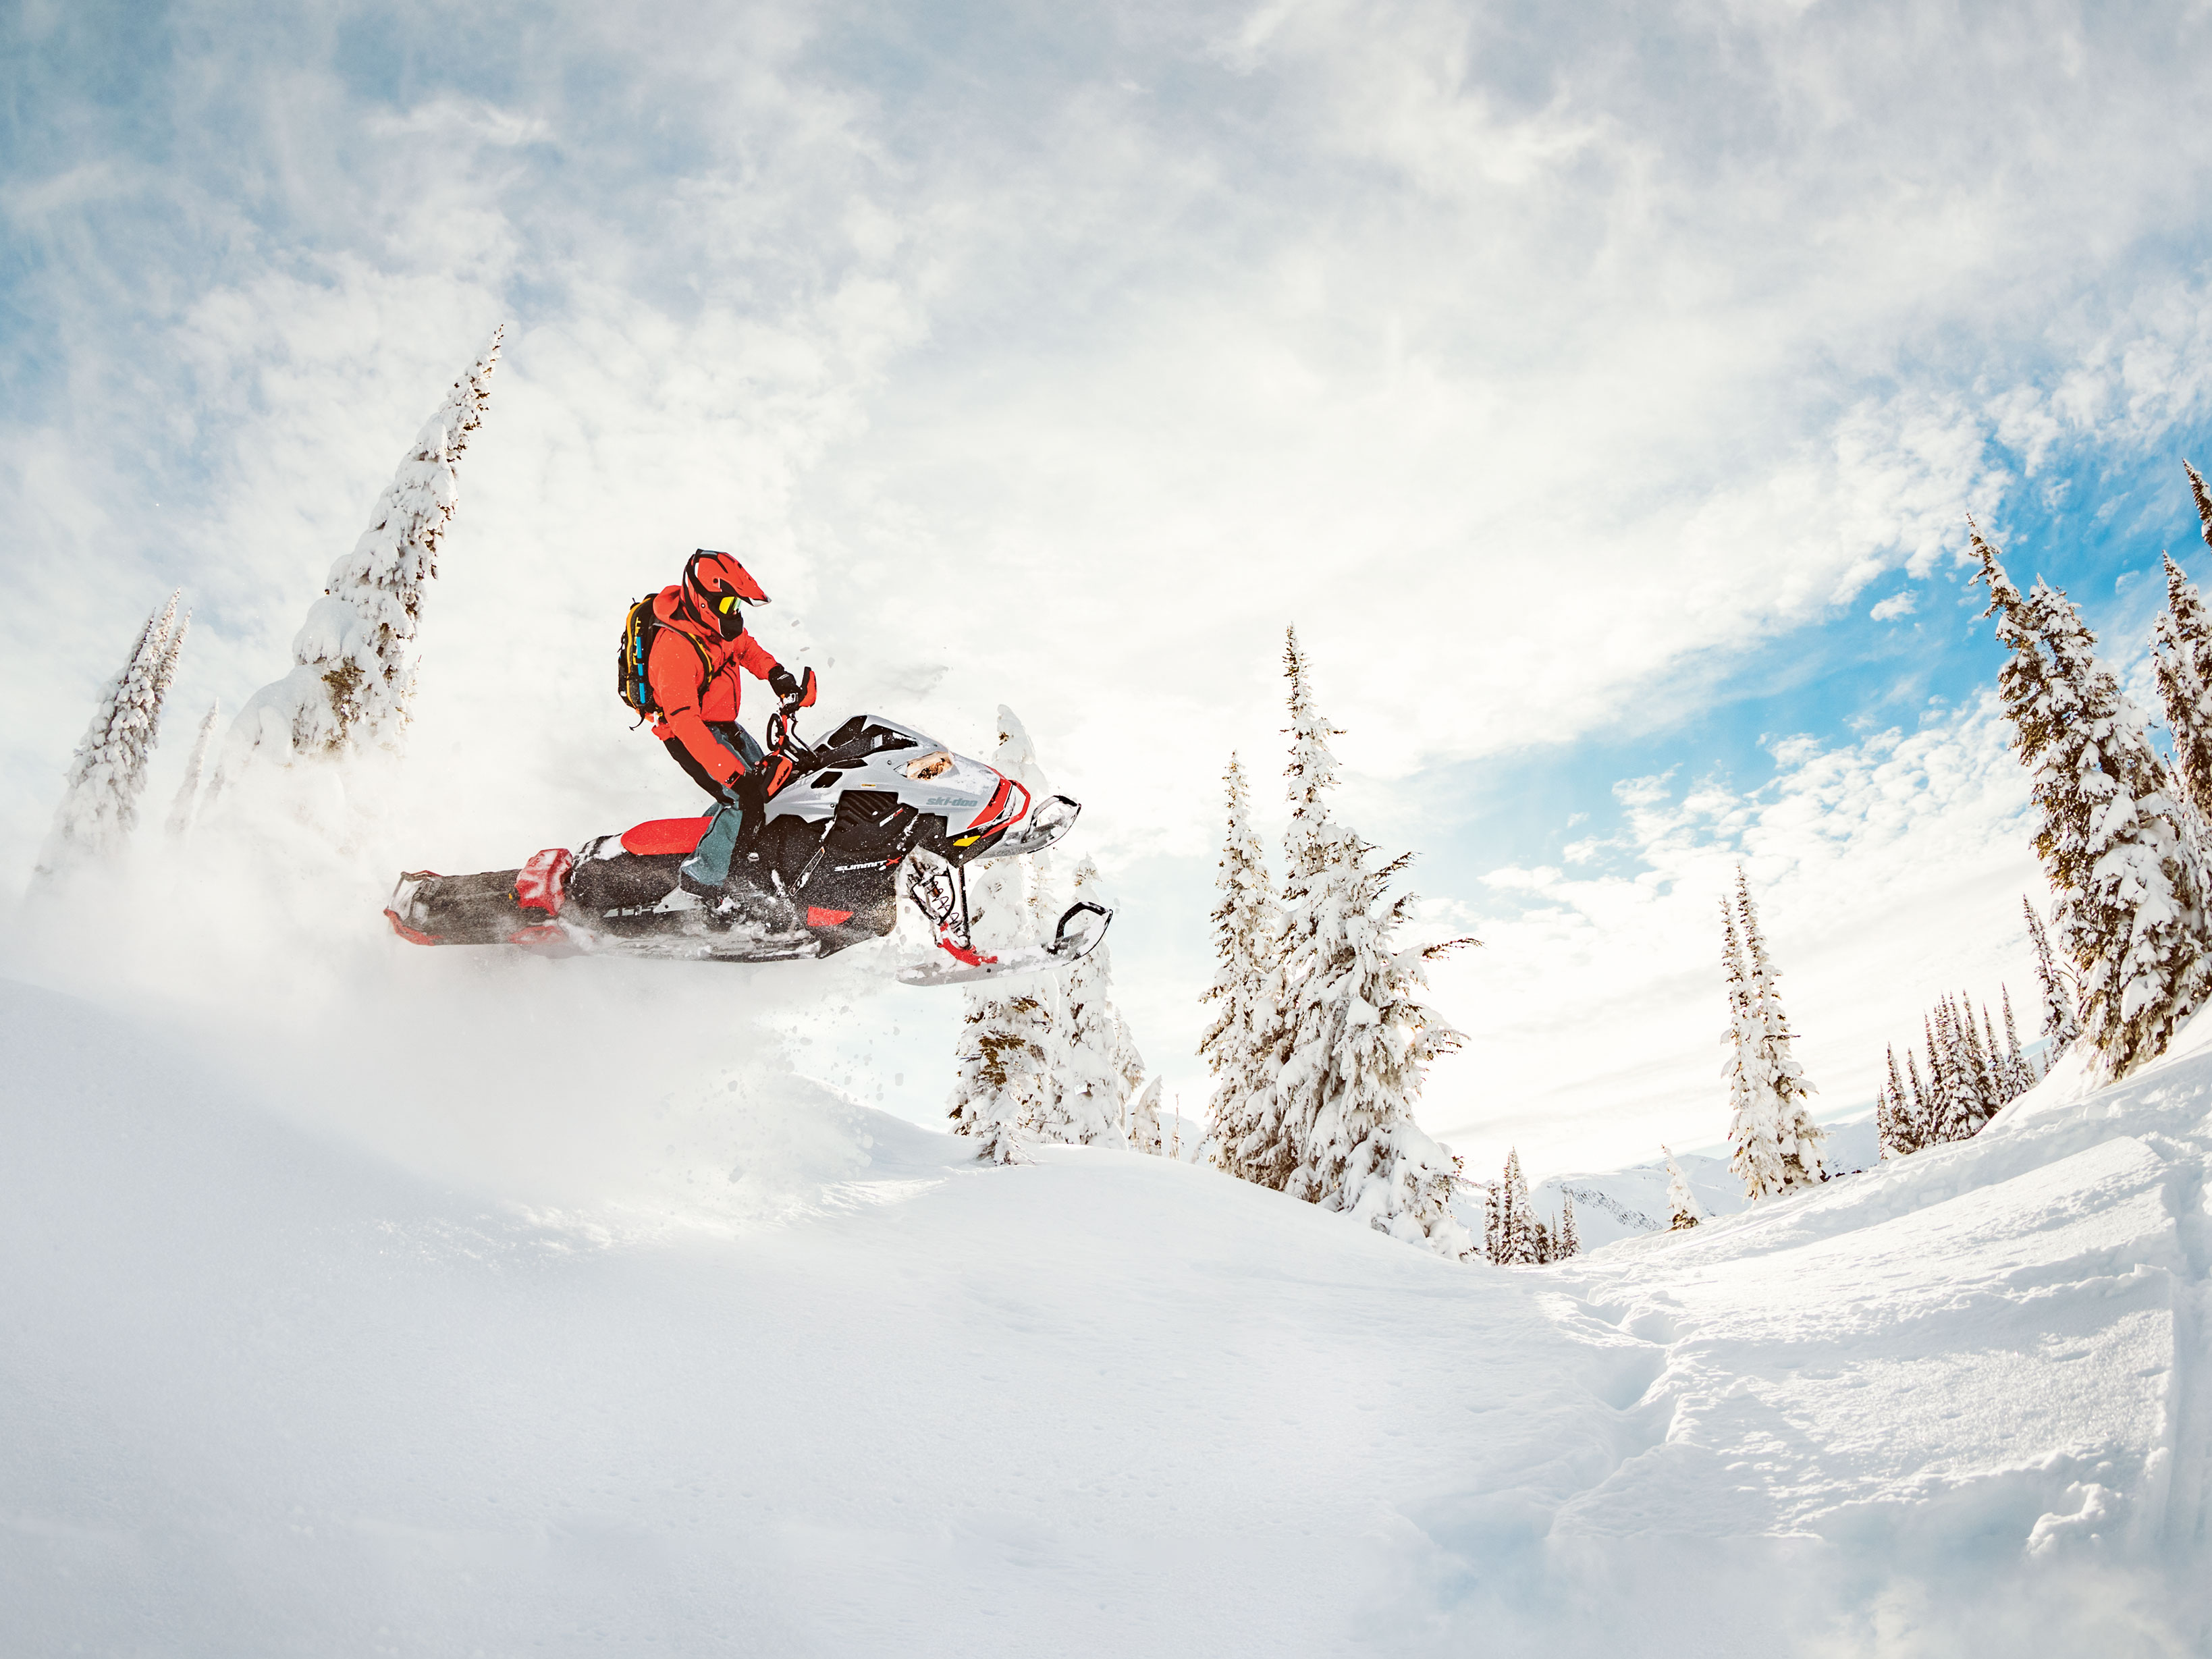 Ski-doo partners with avalanche organizations